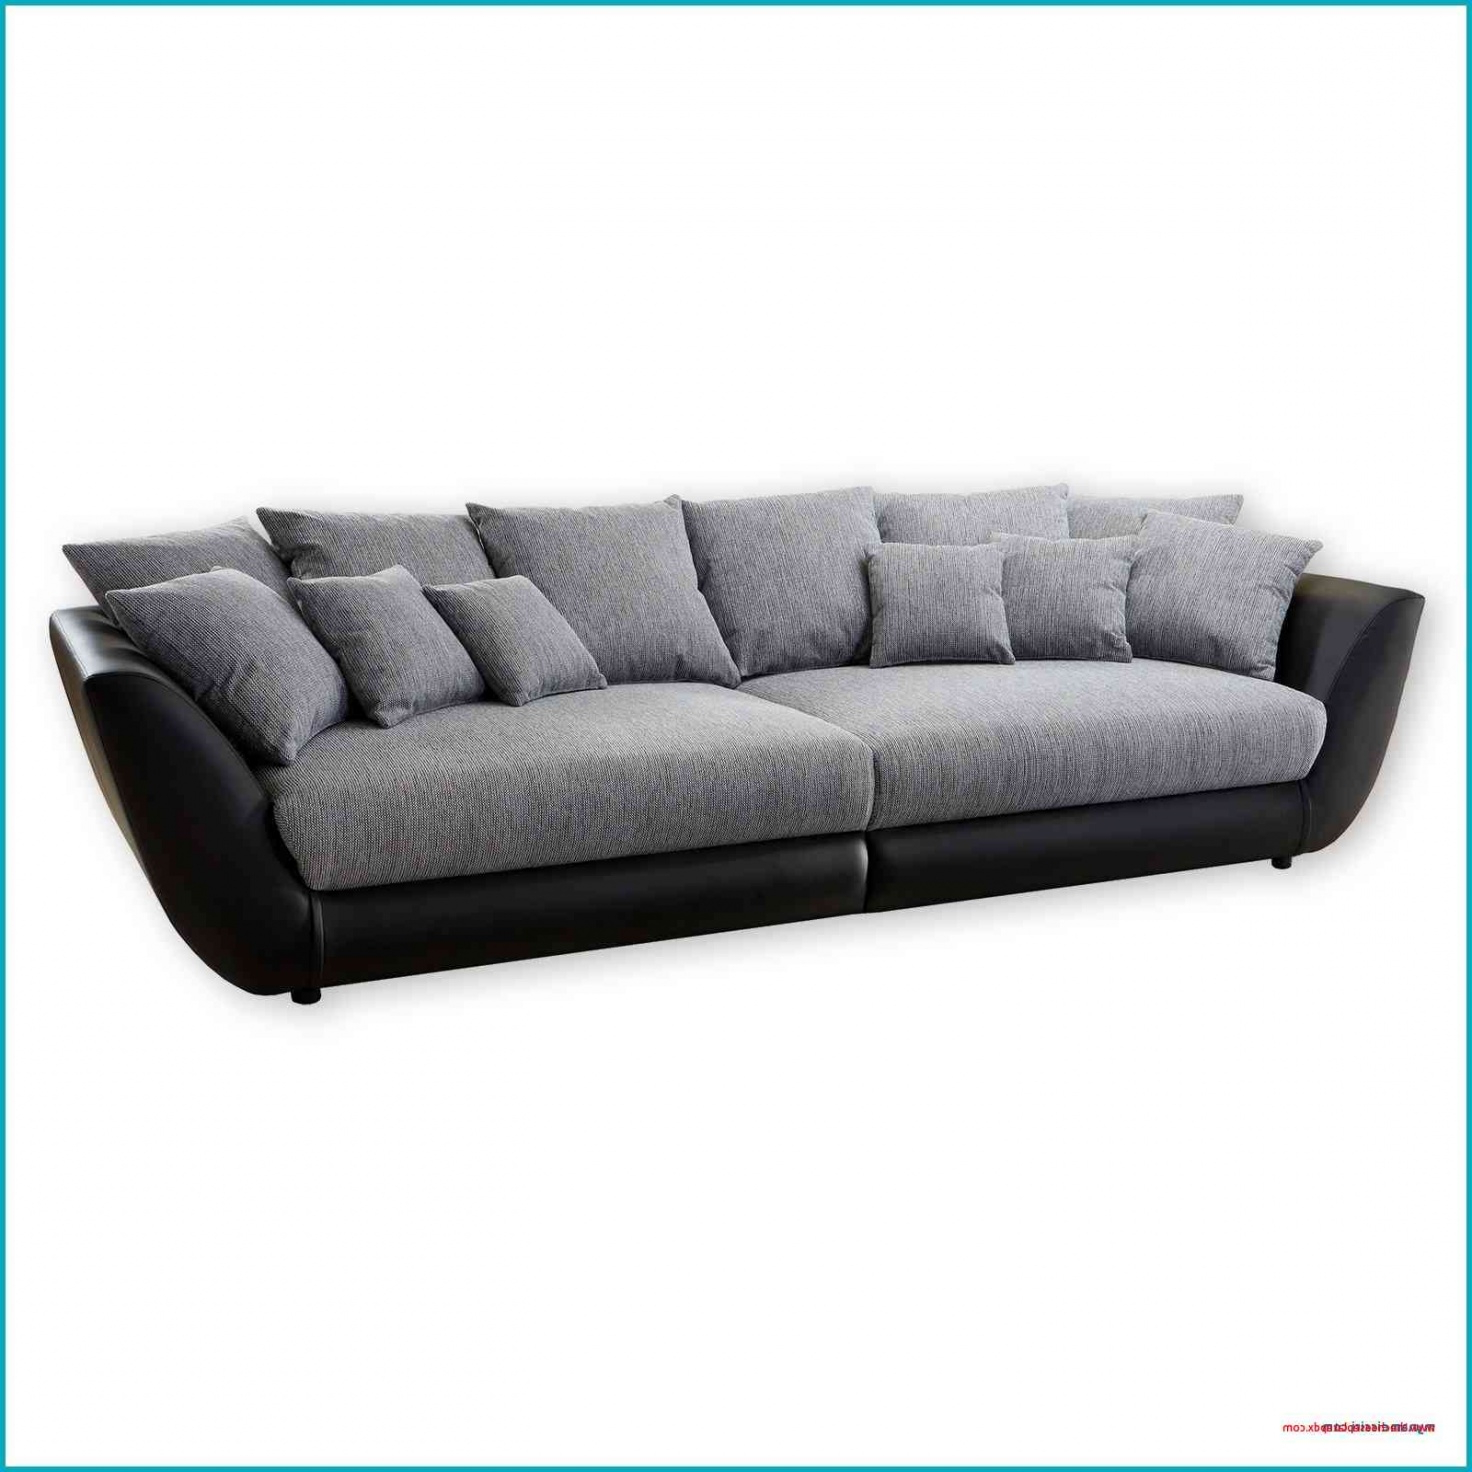 Sofa Cama Merkamueble Drdp Bettsofa Latest Fresh Futon sofa Cama Your Residence Idea Futon